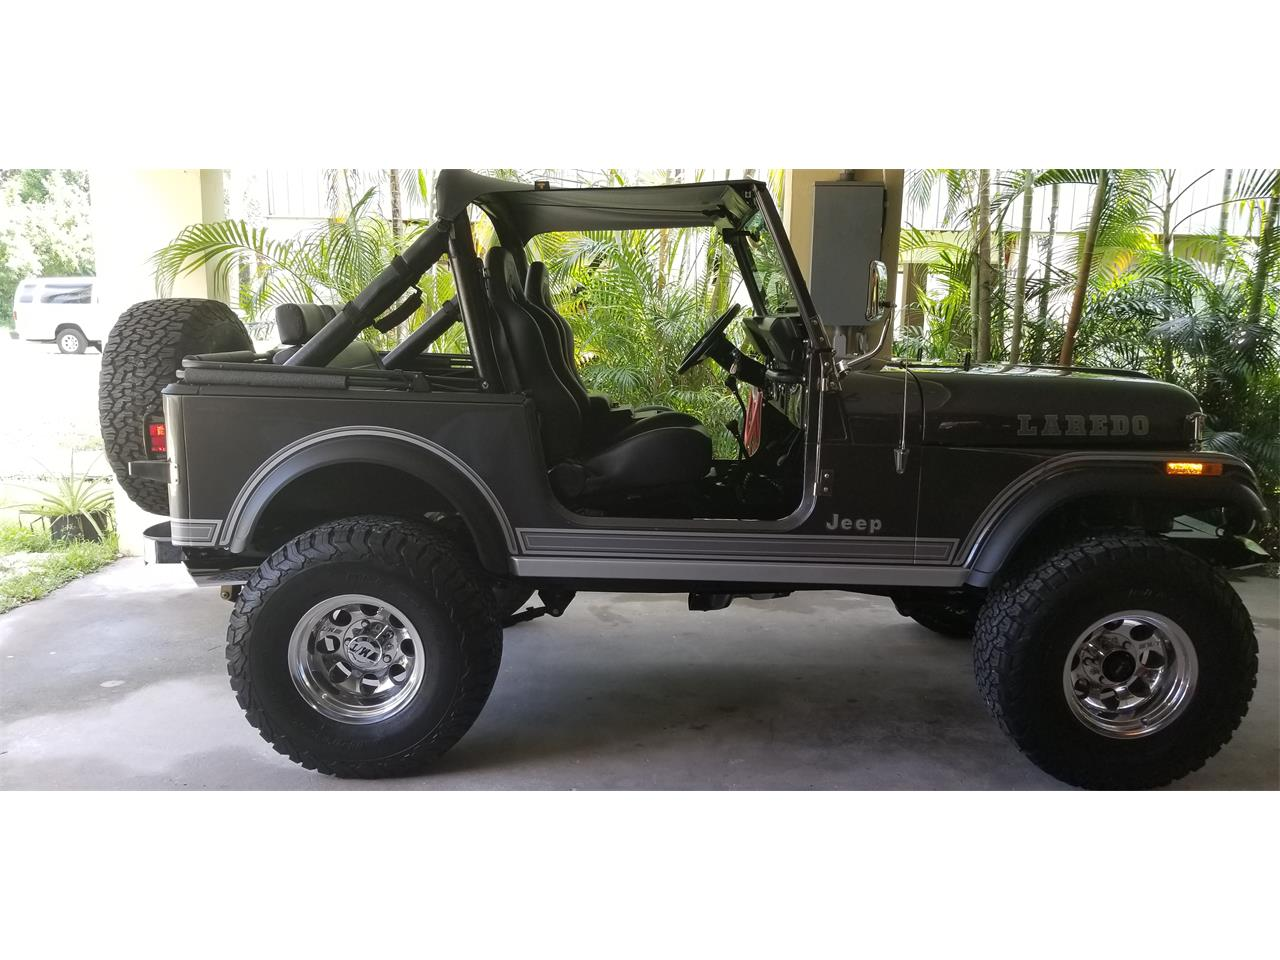 Large Picture of '85 Jeep CJ7 located in St.Petersburg Florida - $32,500.00 Offered by a Private Seller - OF9X